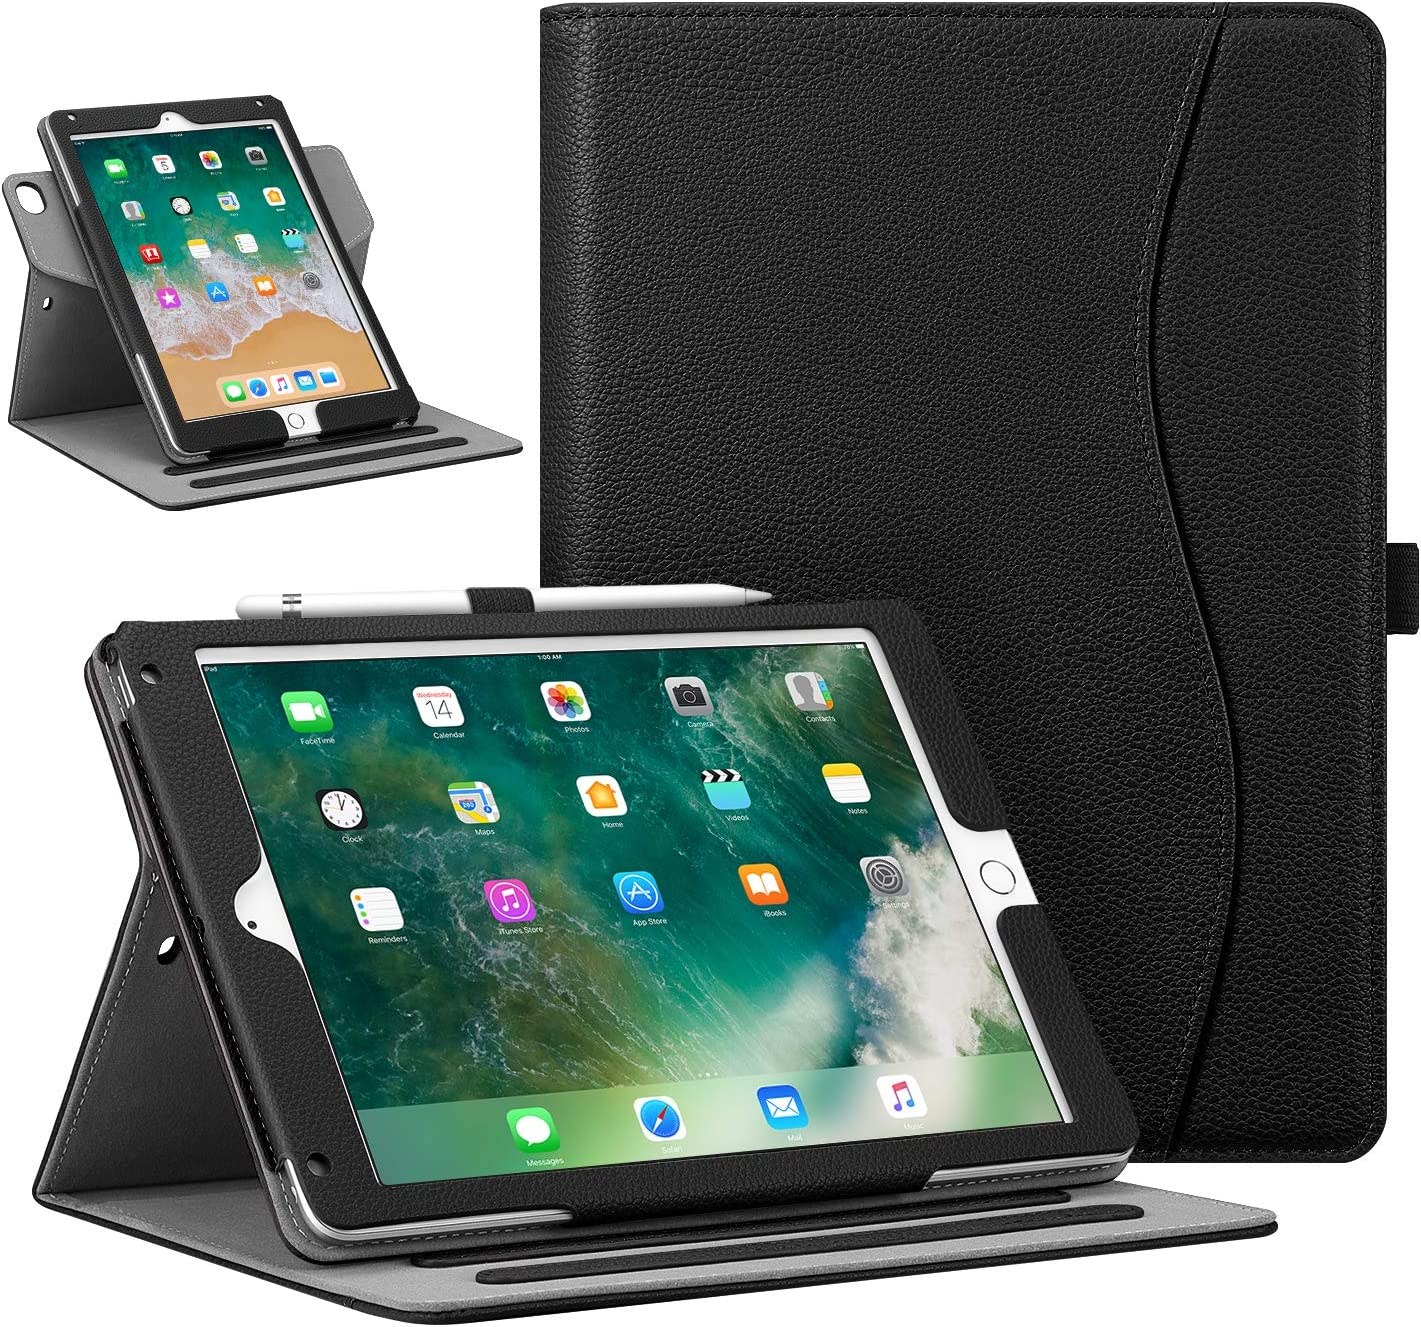 """Fintie Case for iPad 9.7"""" 2018/2017, iPad Air 2 / iPad Air - [Corner Protection] 360 Degree Rotating Smart Stand Cover with Pocket, Pencil Holder, Auto Sleep/Wake for iPad 6th / 5th Gen, Black"""